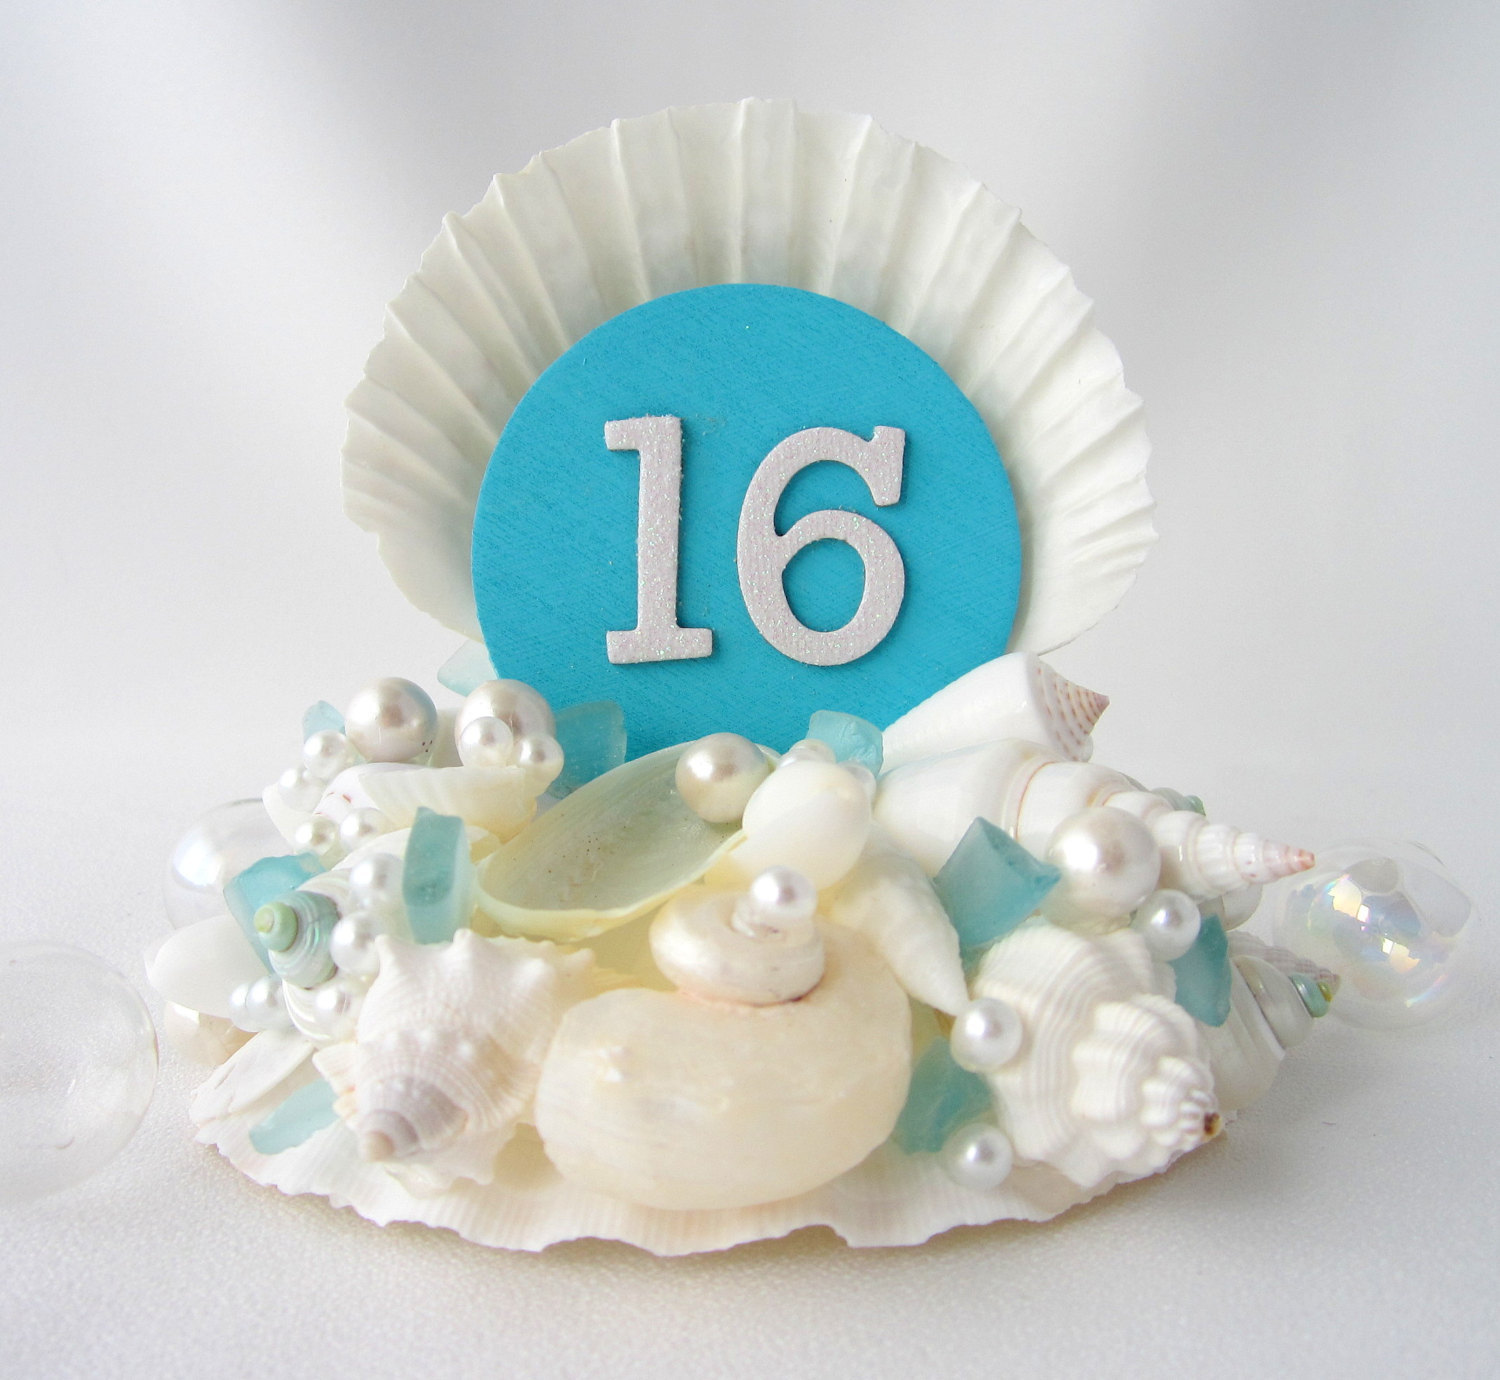 11 Seashell Cake Tops With Letter Cakes Photo Seashell Wedding